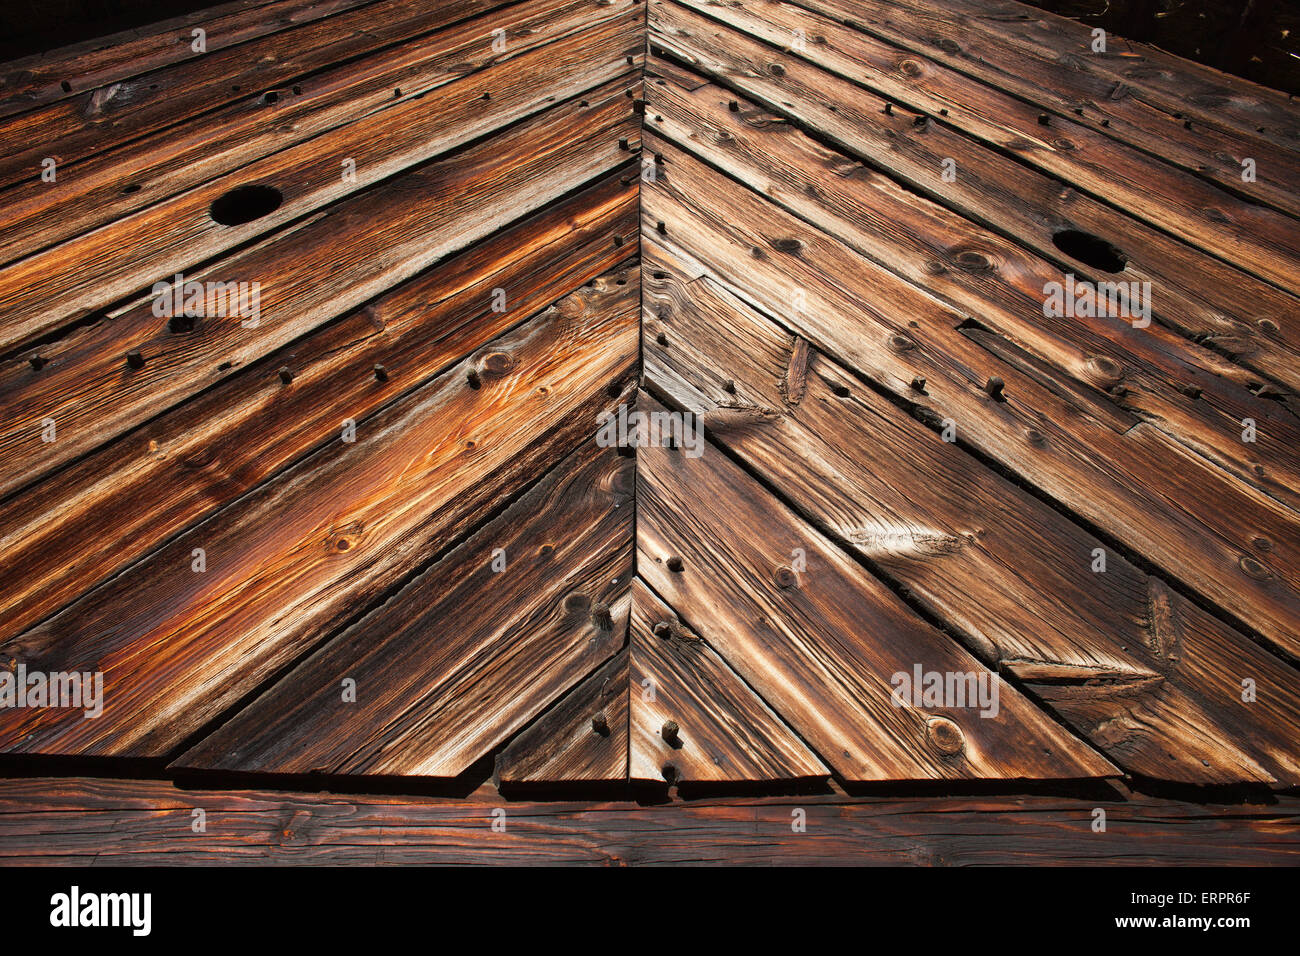 Old barn wall wood planks with beautiful texture - Stock Image